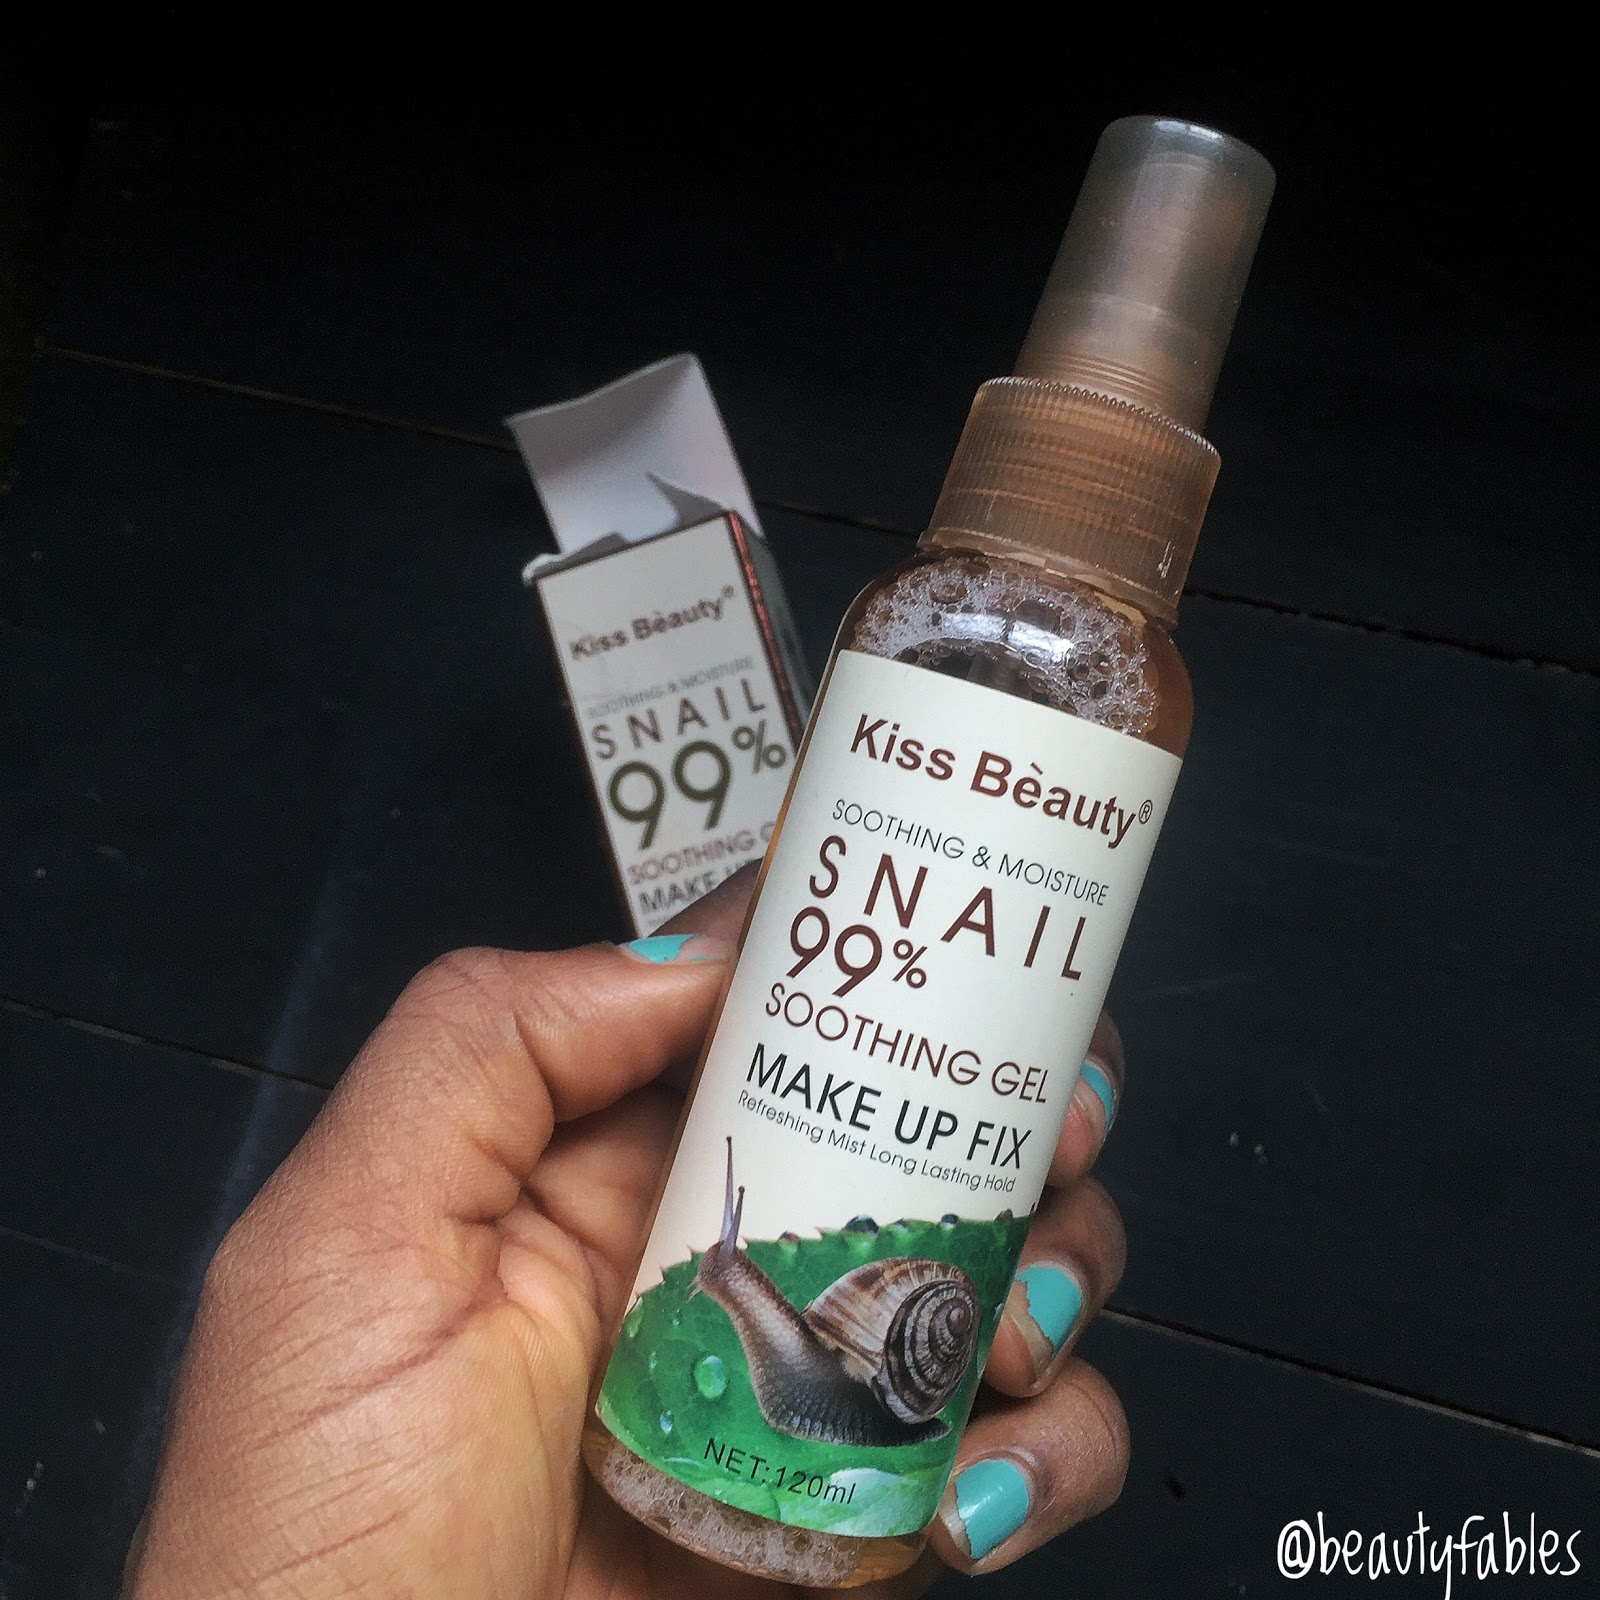 see why i stopped using the Kiss beauty make up fix spray with snail extract